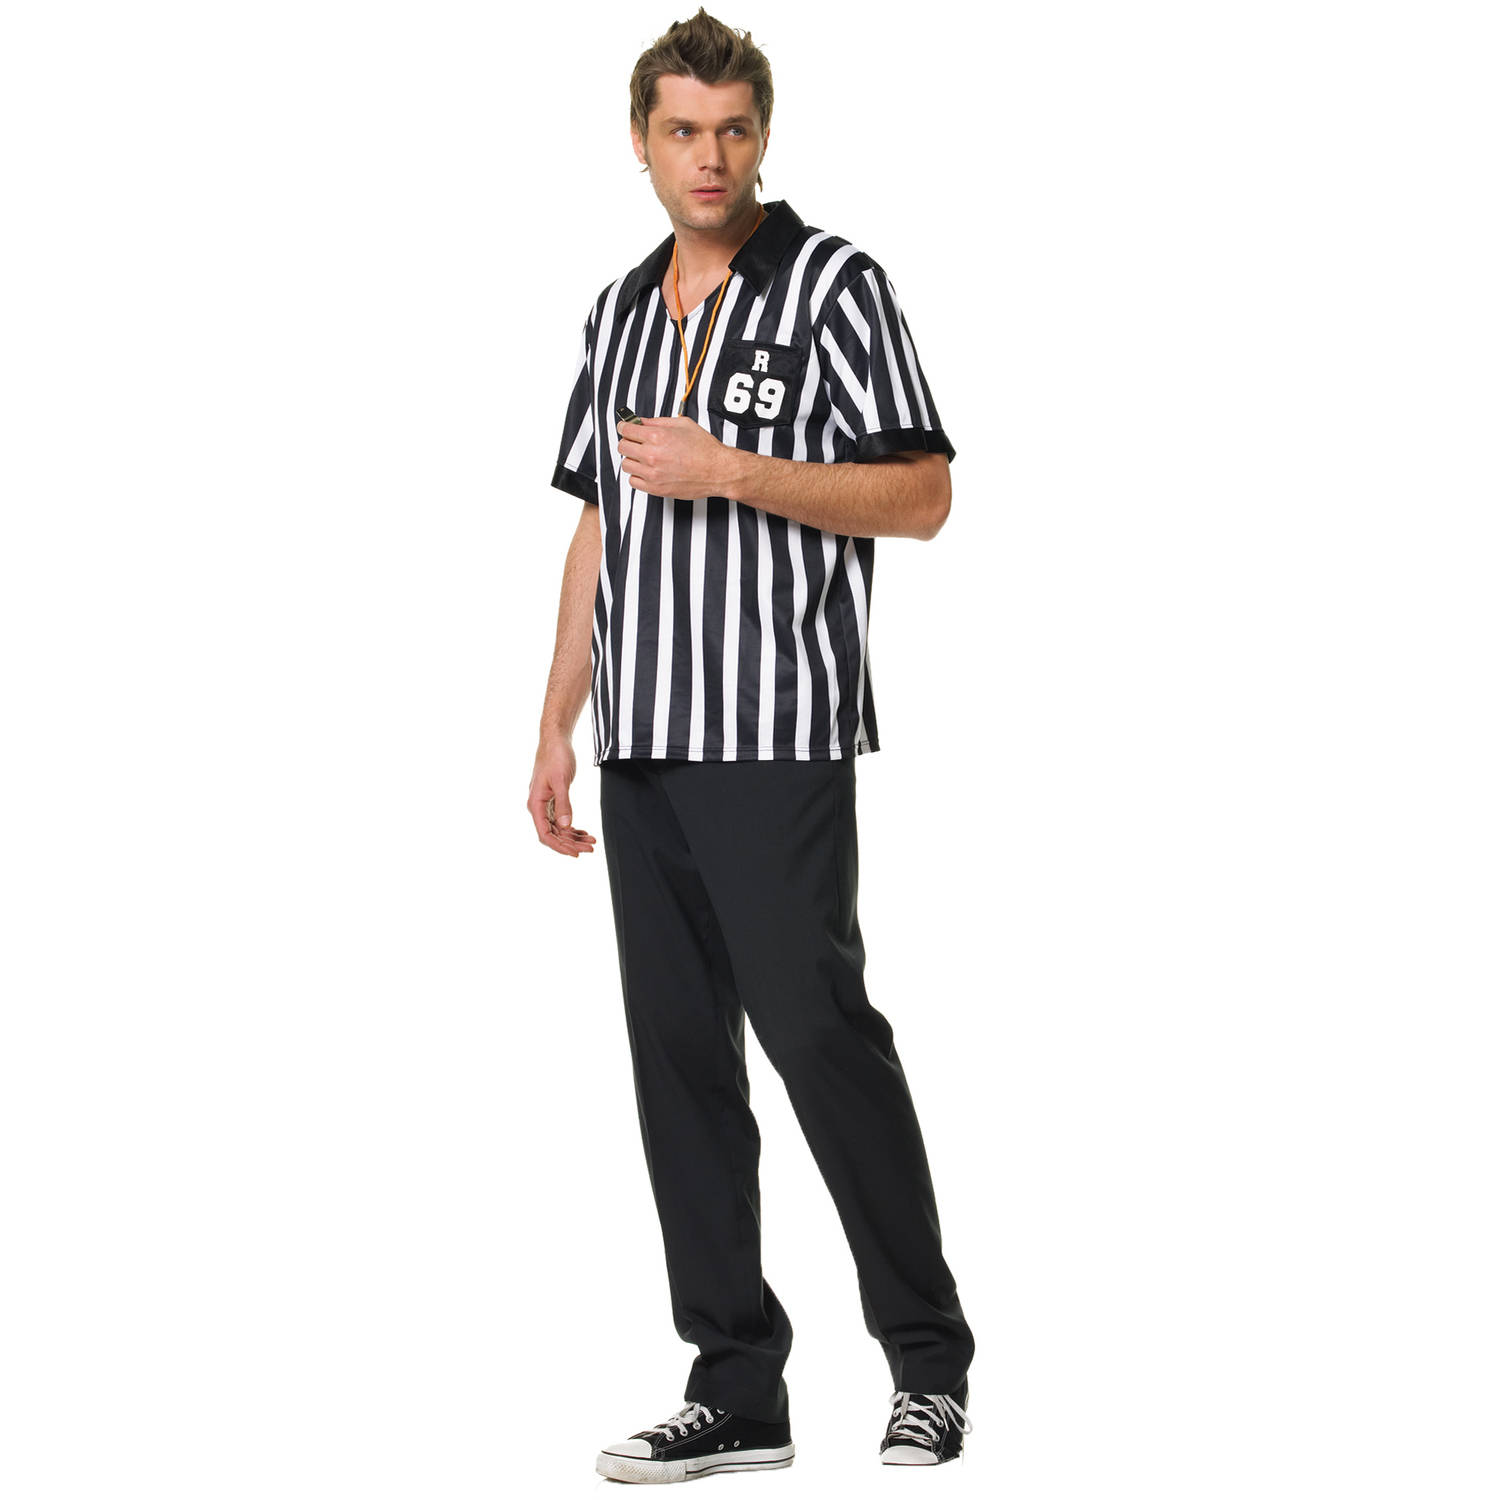 Leg Avenue Men's 2 Piece Referee Costume, Black/White, X-Large